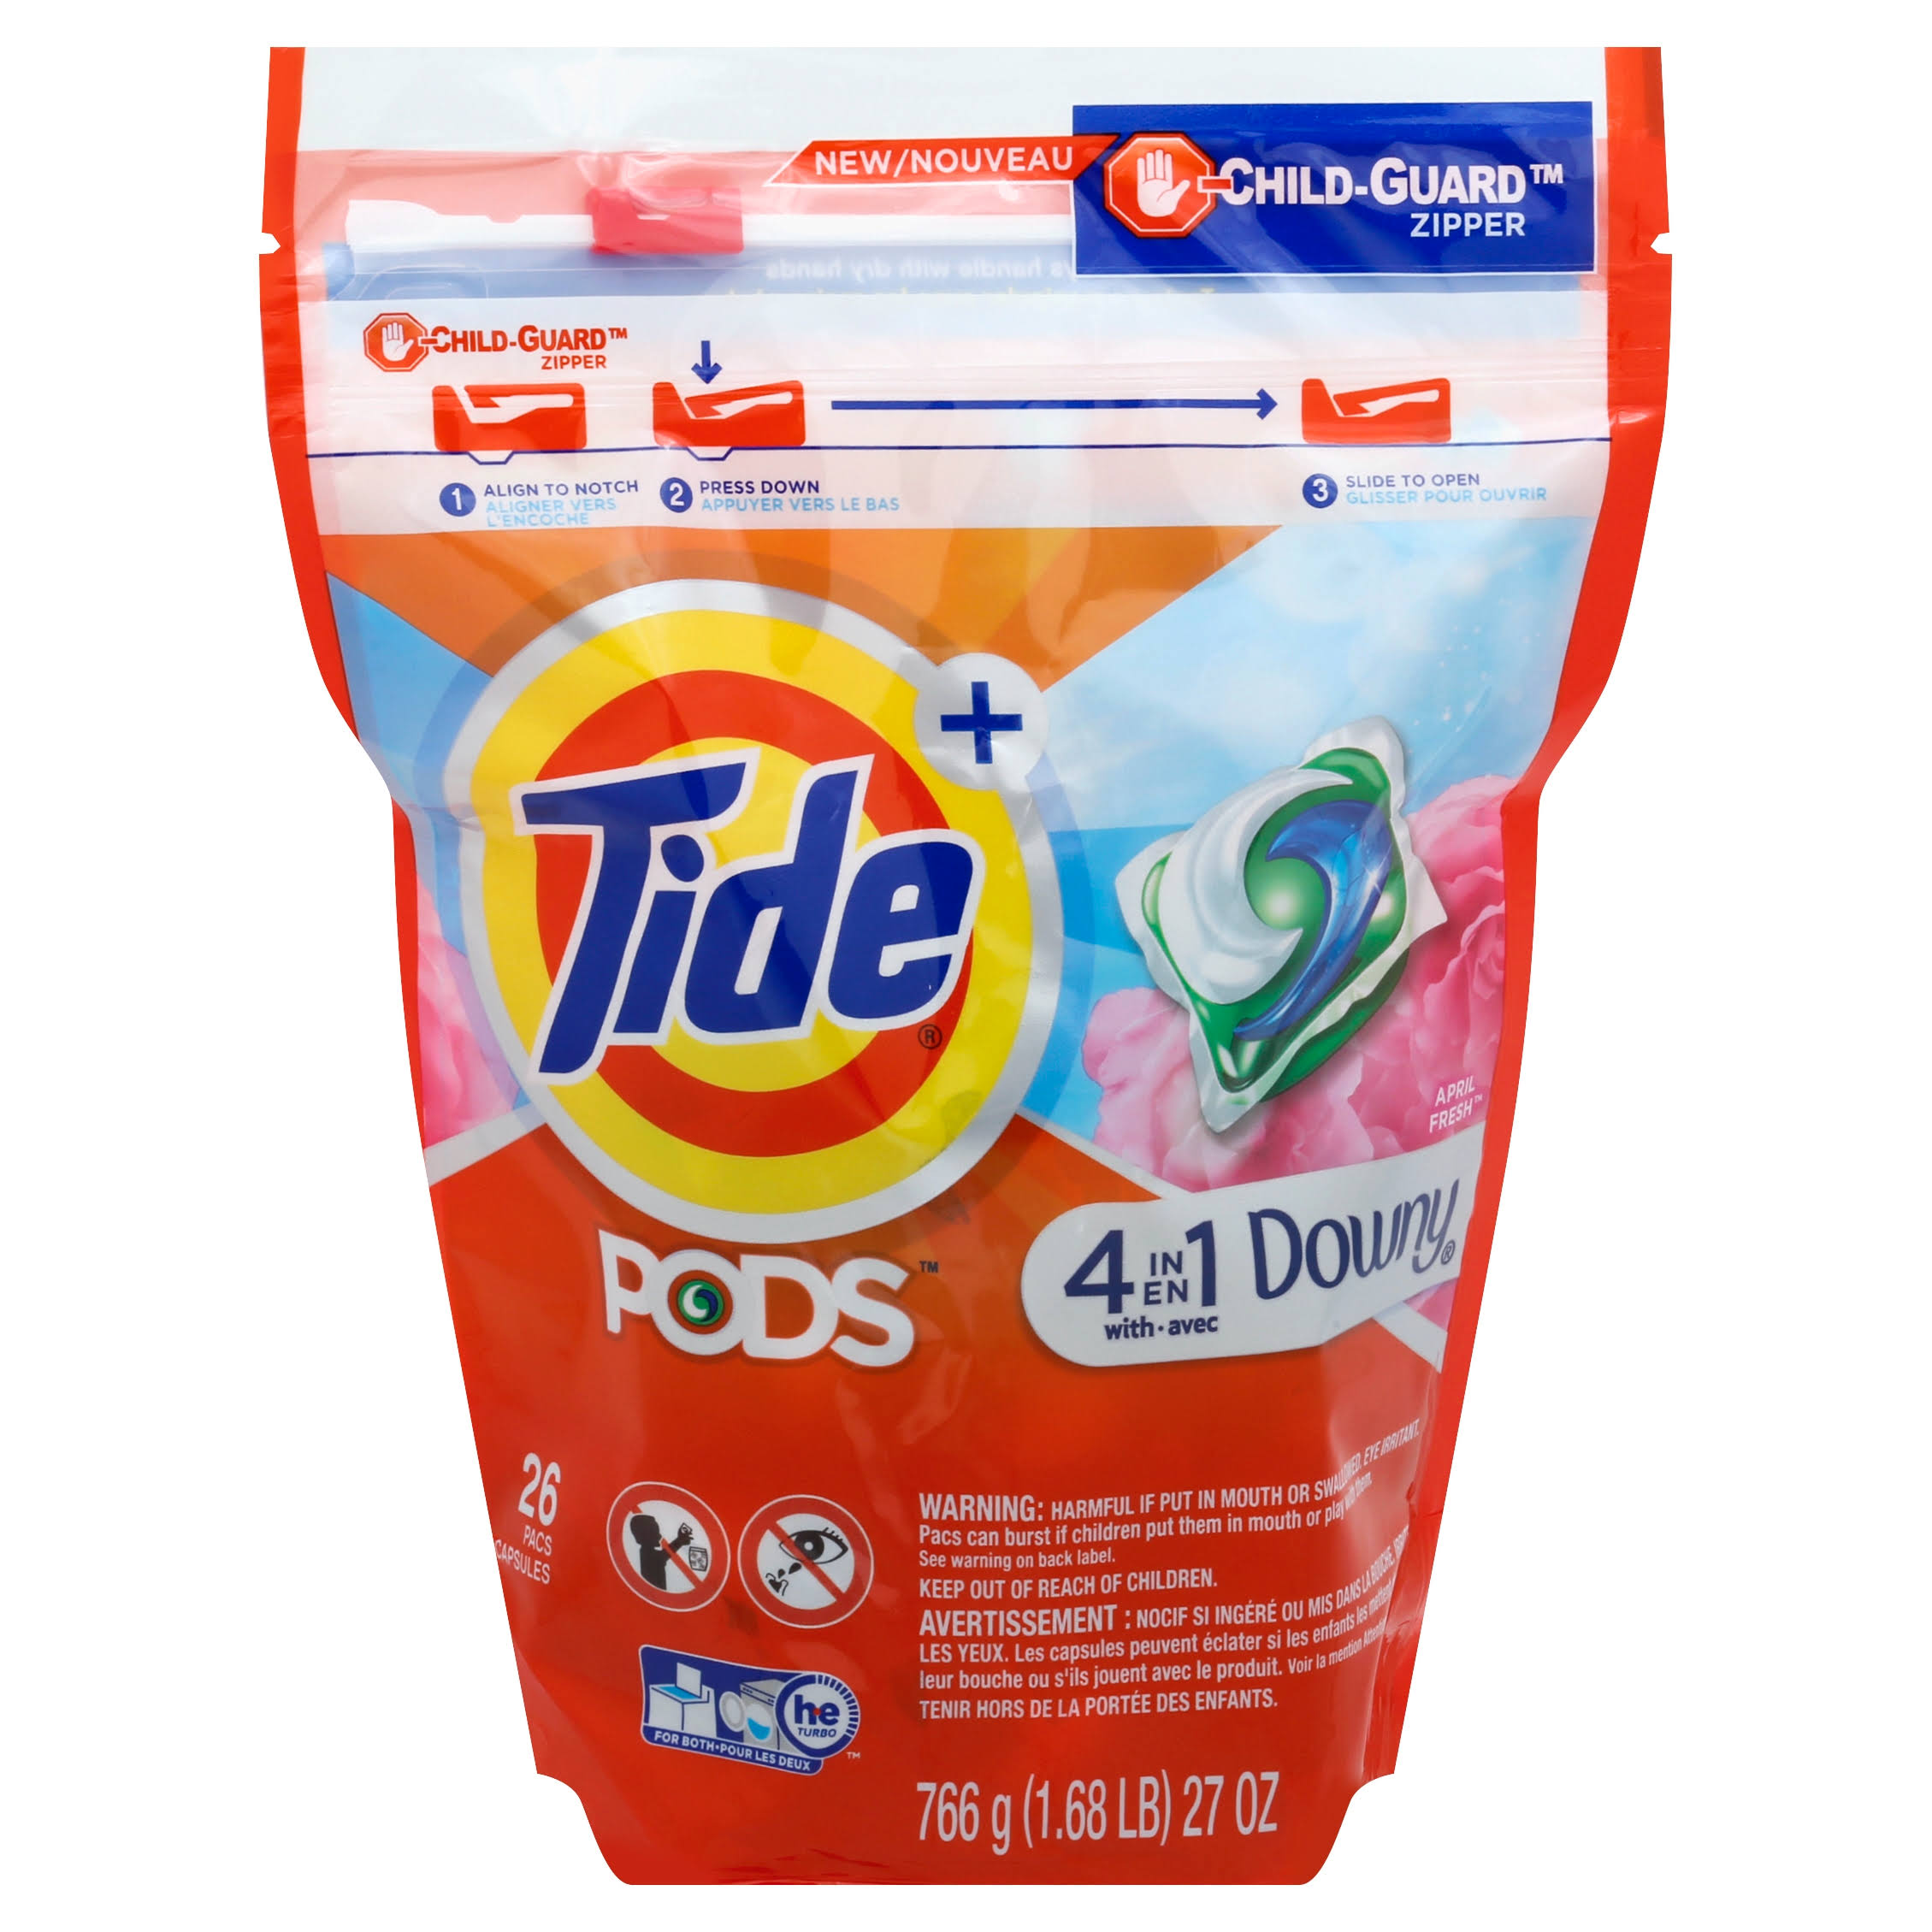 Tide Pods Plus 4 in 1 Downy Laundry Detergent - April Fresh, 26ct